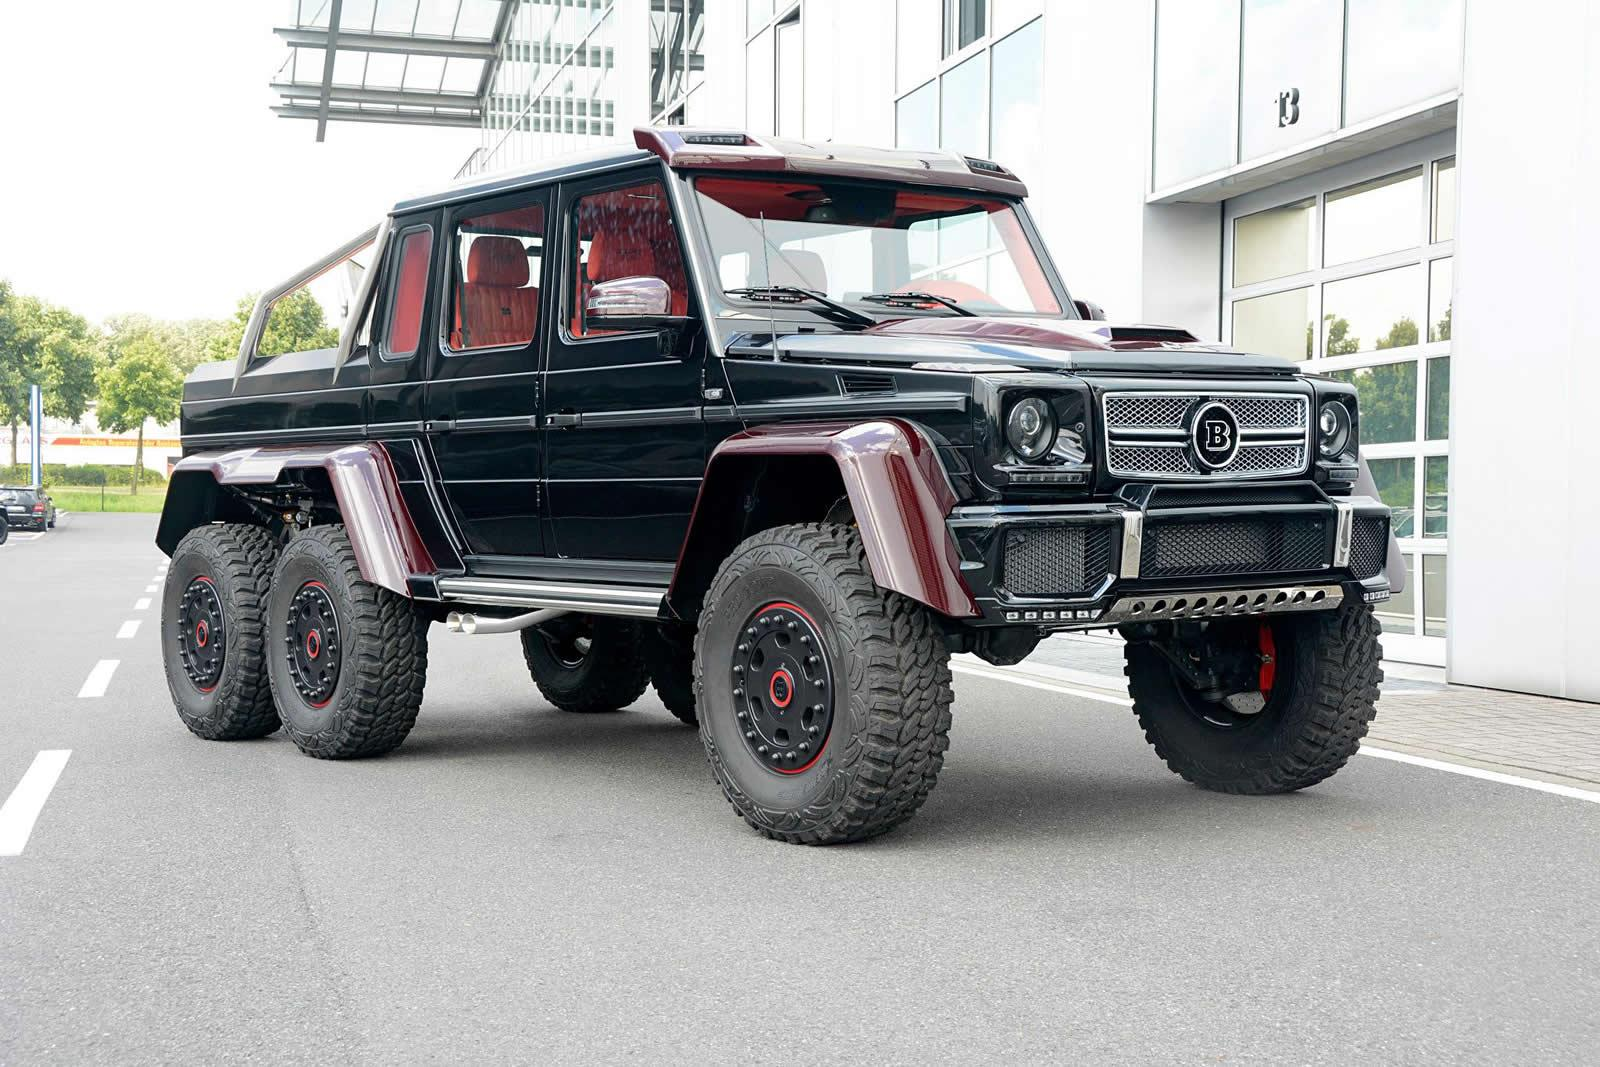 brabus mercedes benz g63 amg 6x6 now sports red carbon fiber for middle east autoevolution. Black Bedroom Furniture Sets. Home Design Ideas